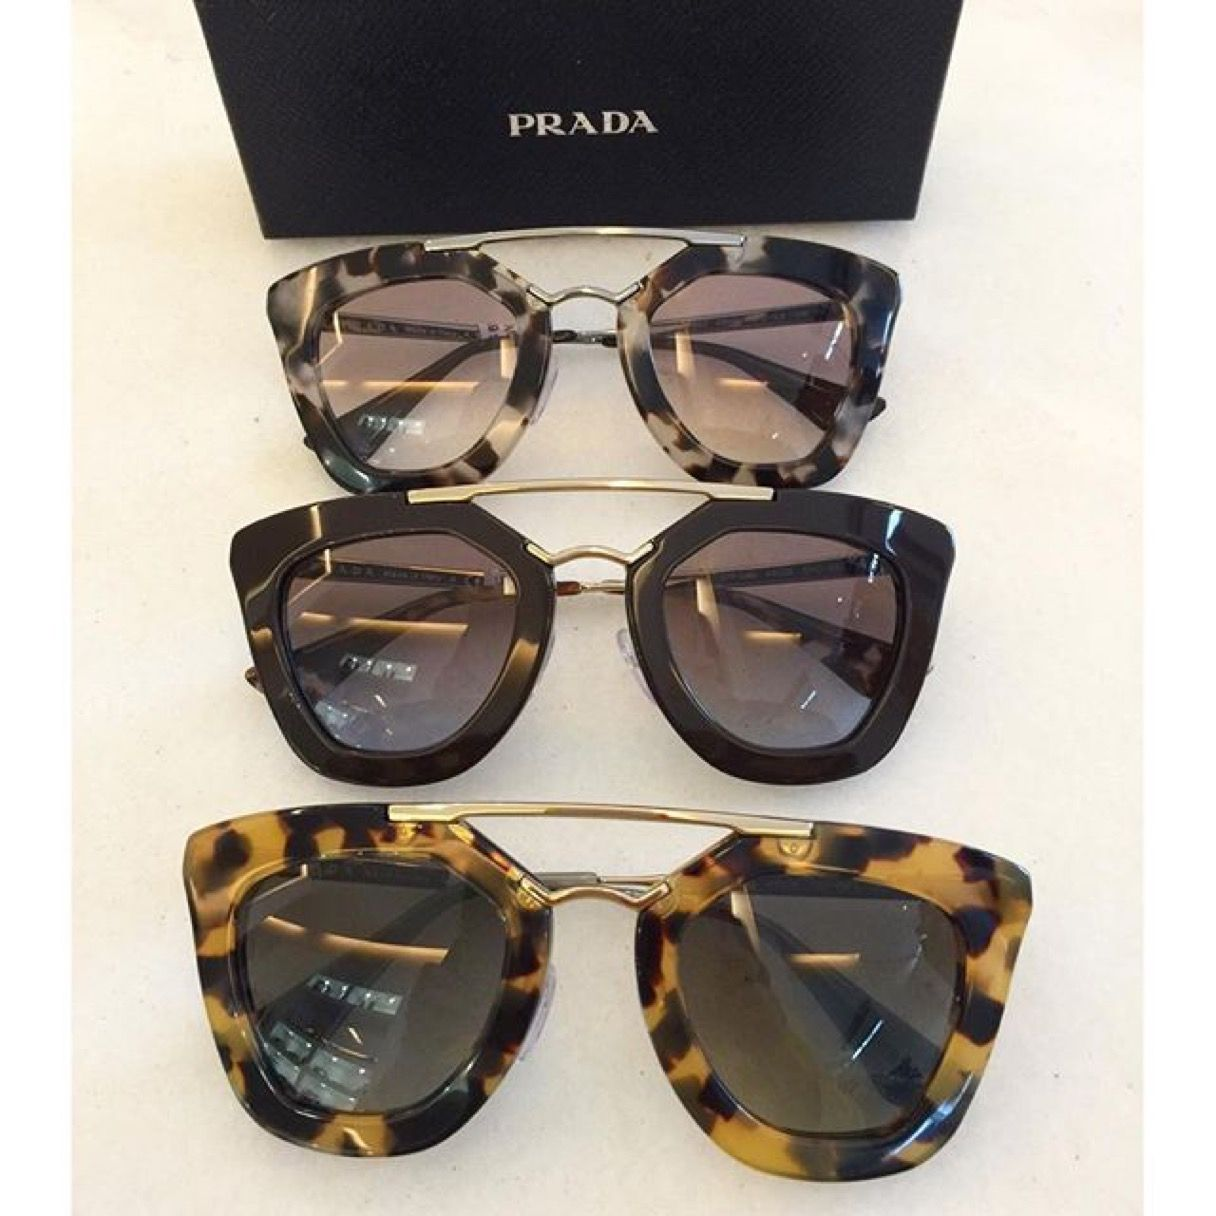 7e4f3d582 Rayban Goldtone & Brown Aviator Sunglasses #zulilyfinds Prada Cinema